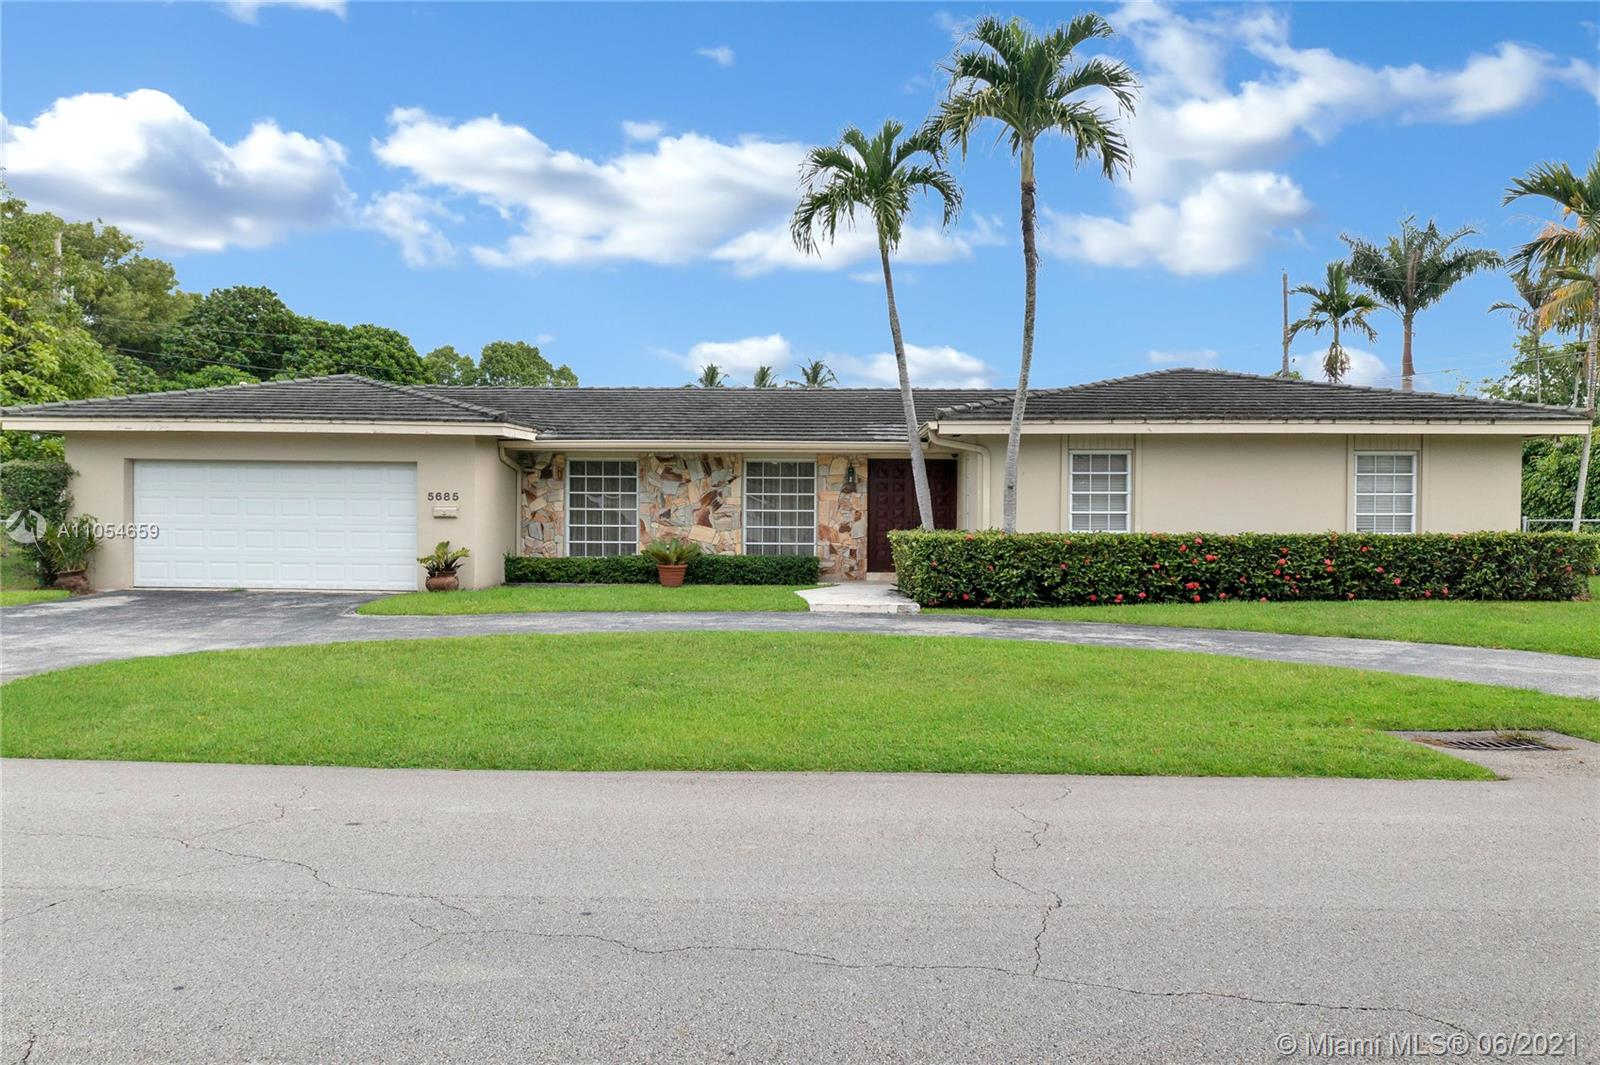 ****** MOTIVATED SELLERS -  OPEN TO OFFERS!!!!!!********Location, Location, Location!!!  Highly desired area in South Miami/High Pines, 3/3 home on corner lot.  Close to  Dante Fascell Park, Epiphany Church, Our Lady of Lourdes, Downtown South Miami, Temple Beth-Am, St.Thomas Episcopal School,  and only about 10 minutes to Merrick Park or 5 minutes to Dadeland. Large spacious floor plan sits on large corner lot with plenty of room for a pool.  Two car garage with large circular driveway. This home can easily be updated to become your dream home in one of the most sough-after locations in Miami-Dade County. Square footage is larger than the tax roll according to seller. Showing Assist or call listing agent for showings.